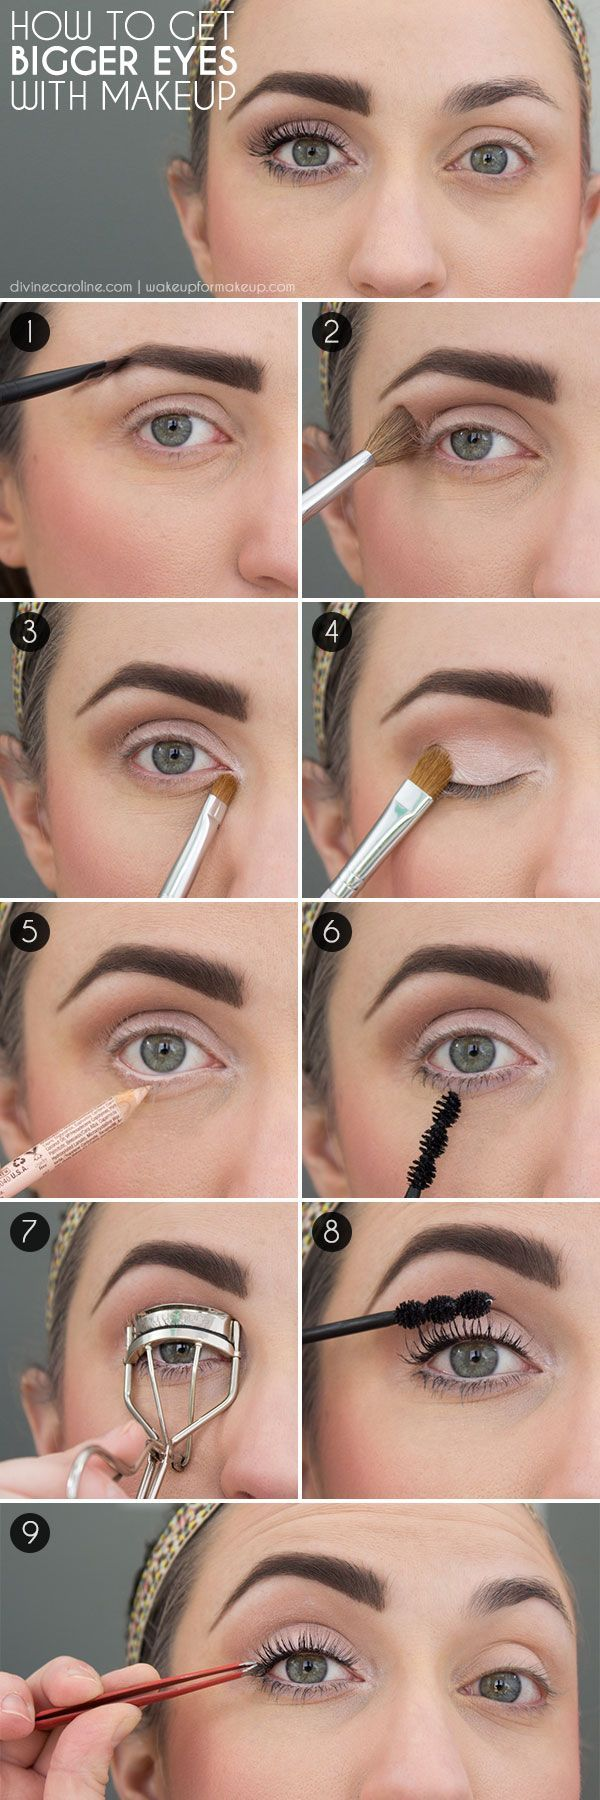 Tutorial on how to make your eyes bigger with makeup.